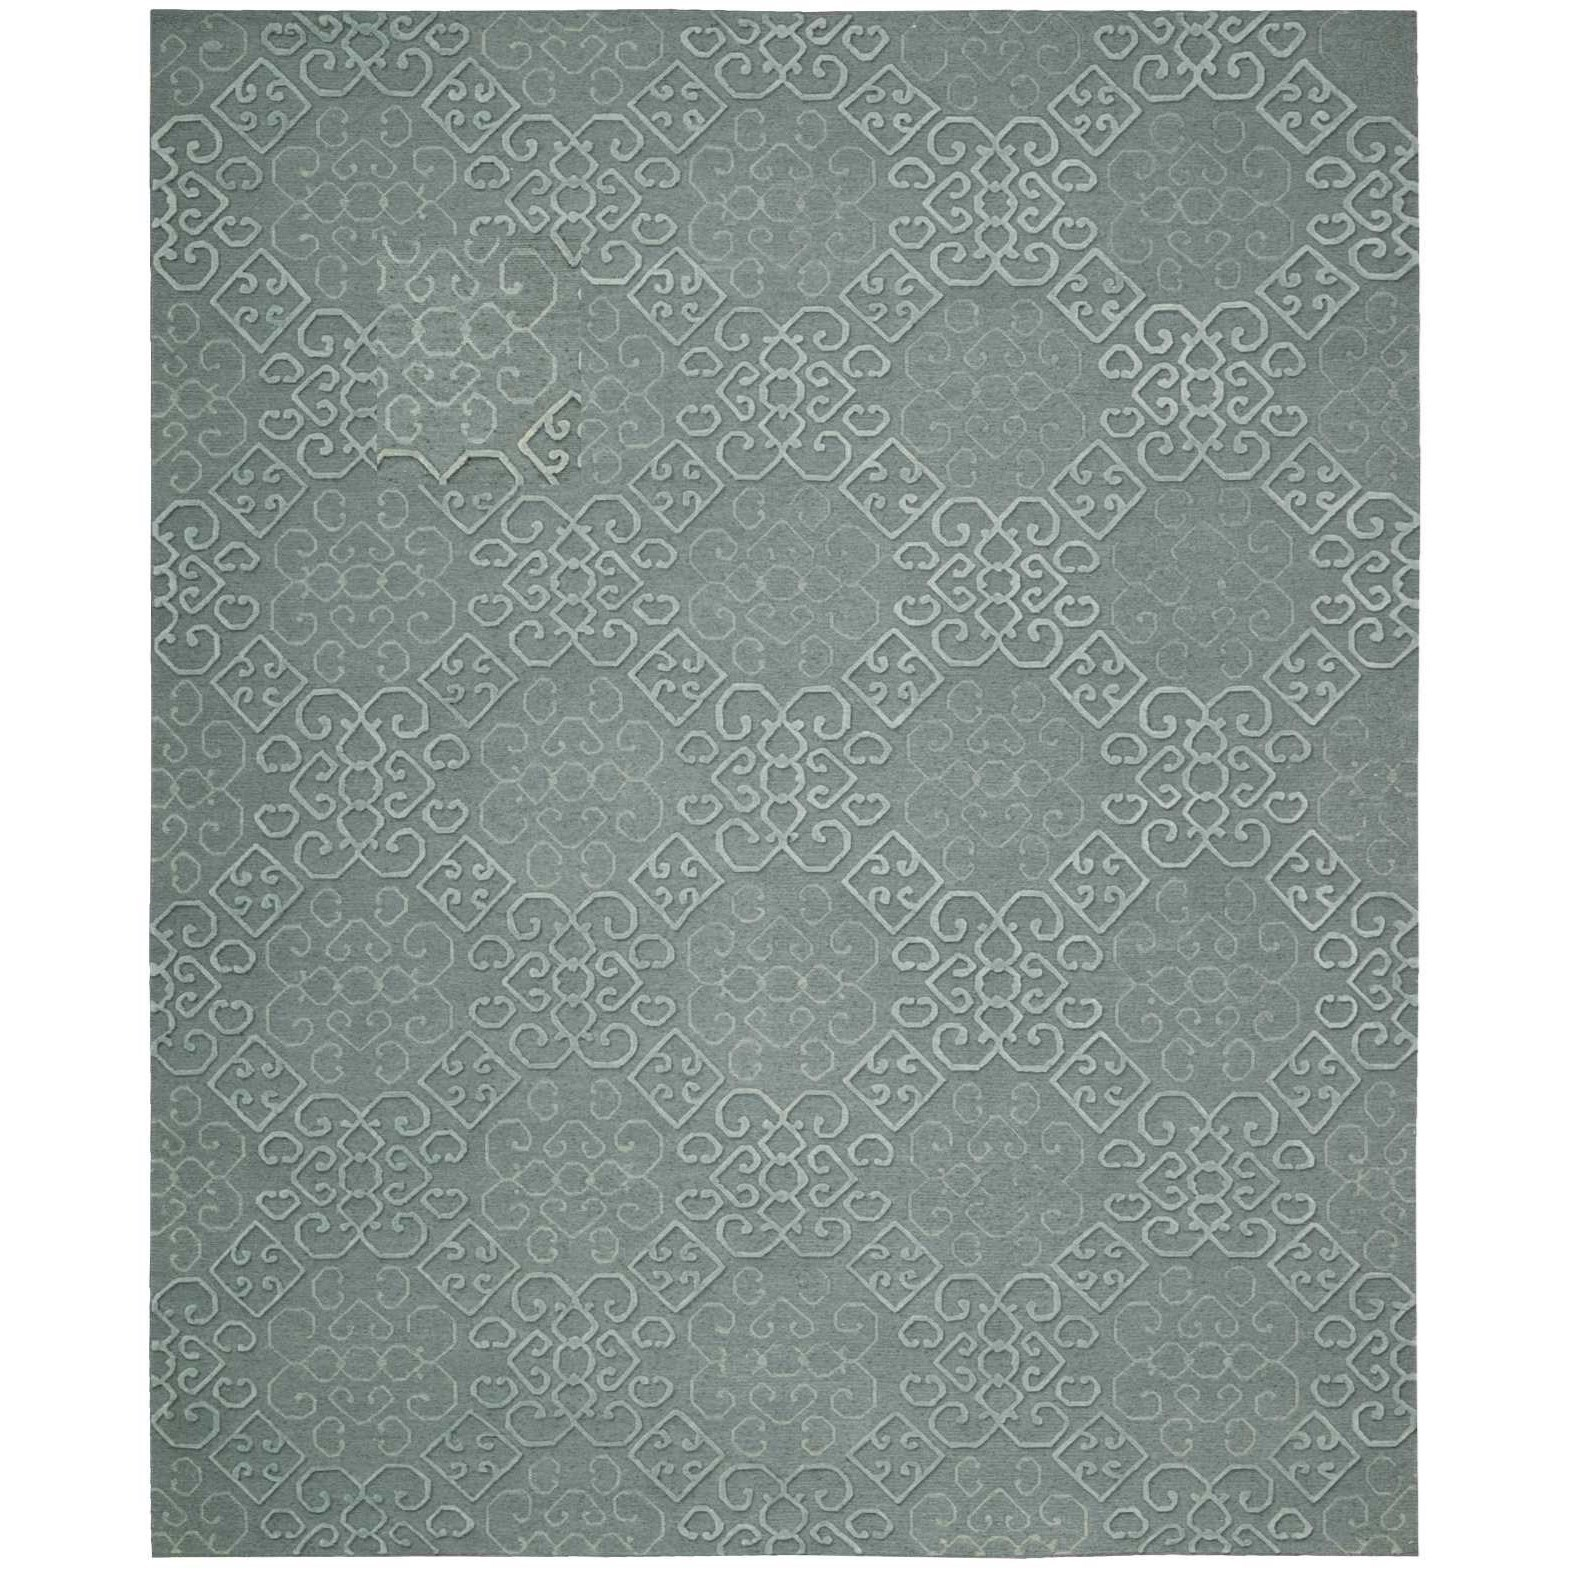 "5'6"" x 7'5"" Slate Rectangle Rug"